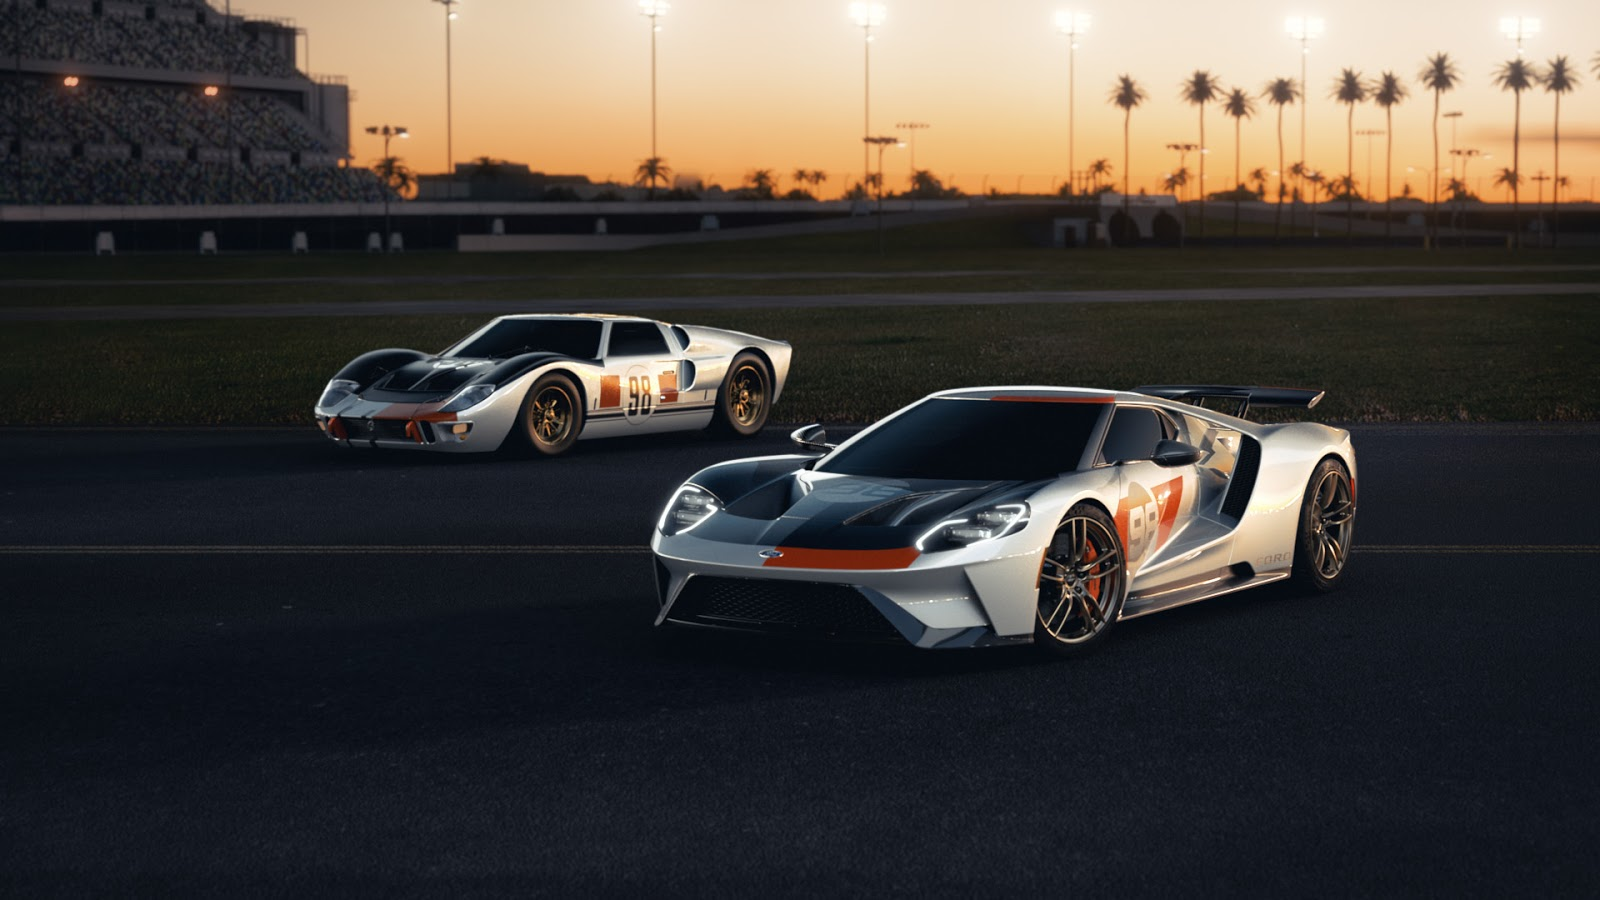 2021 Ford GT Heritage Edition 09 Η πρώτη έκδοση Heritage Edition του Ford GT και η μοναδική έκδοση, Studio Collection